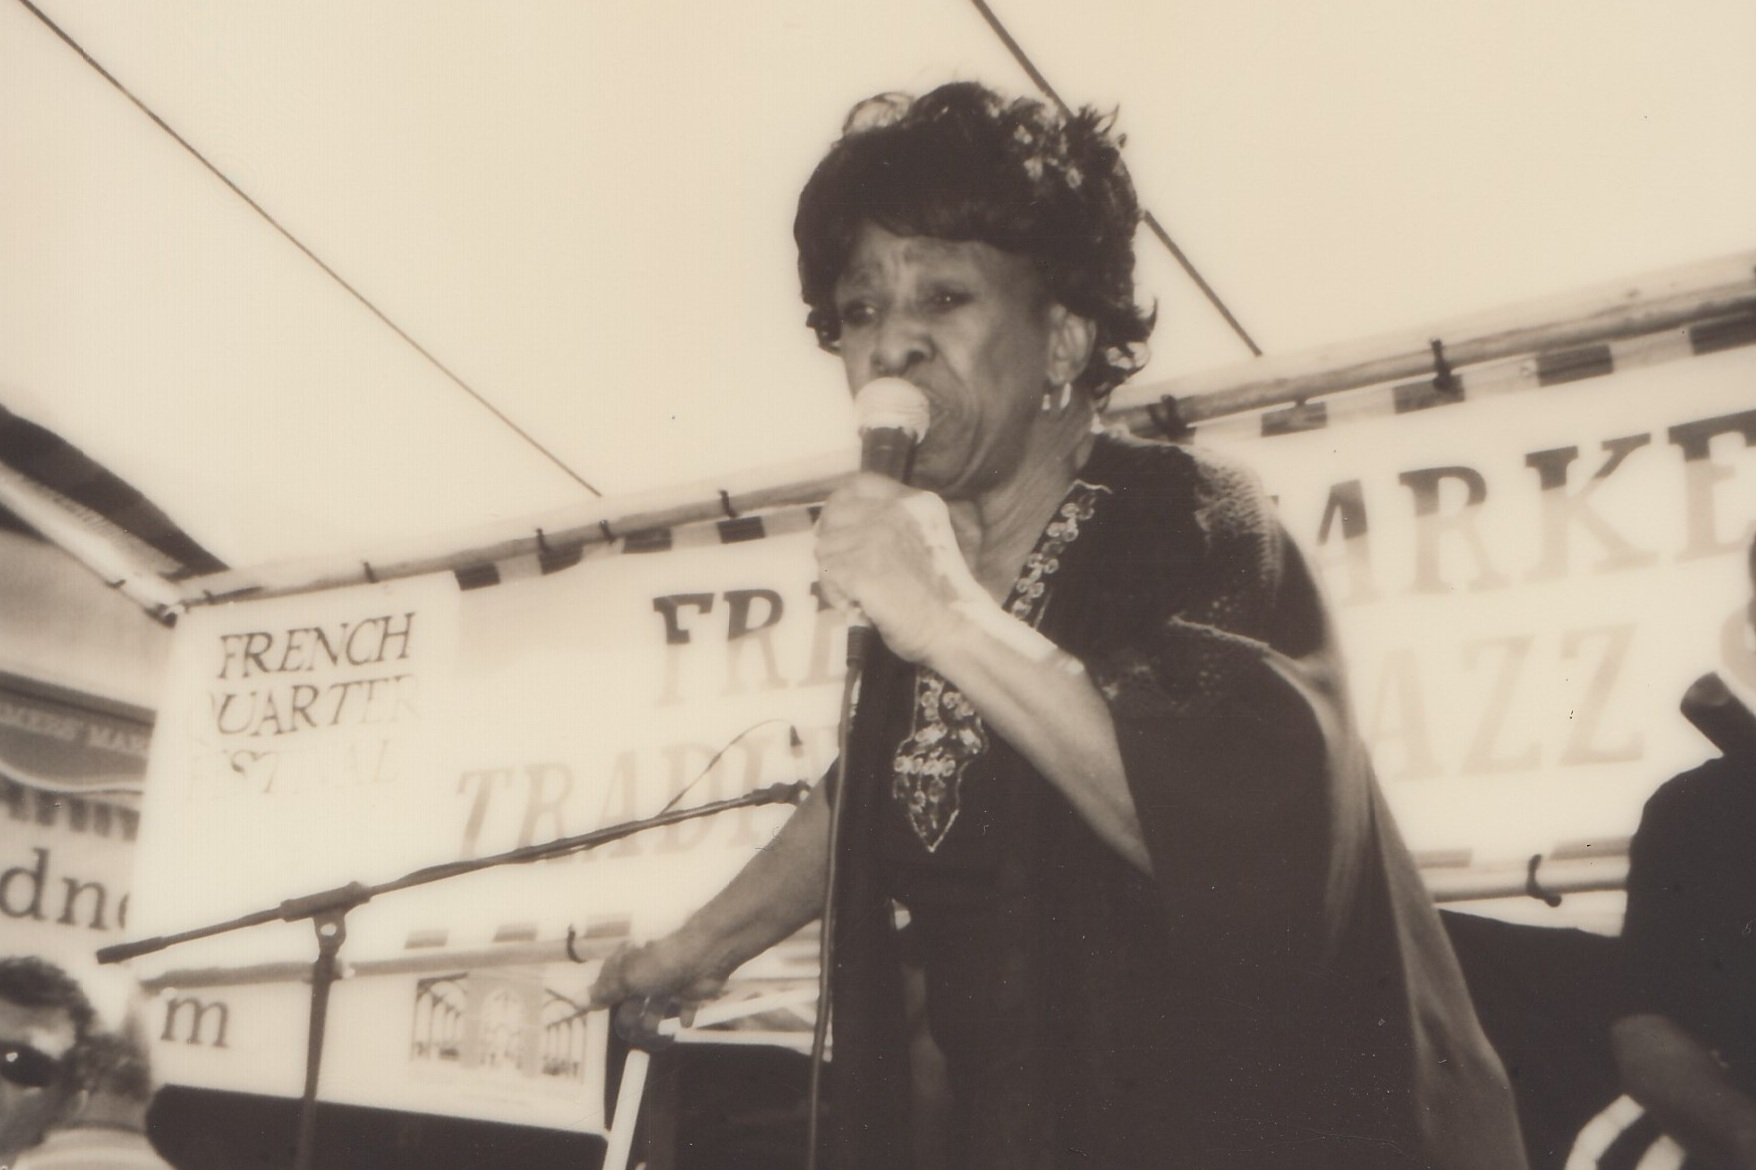 Thais Clark performing at French Quarter Fest 2017, by Baylee Badawy / New Orleans Jazz Museum